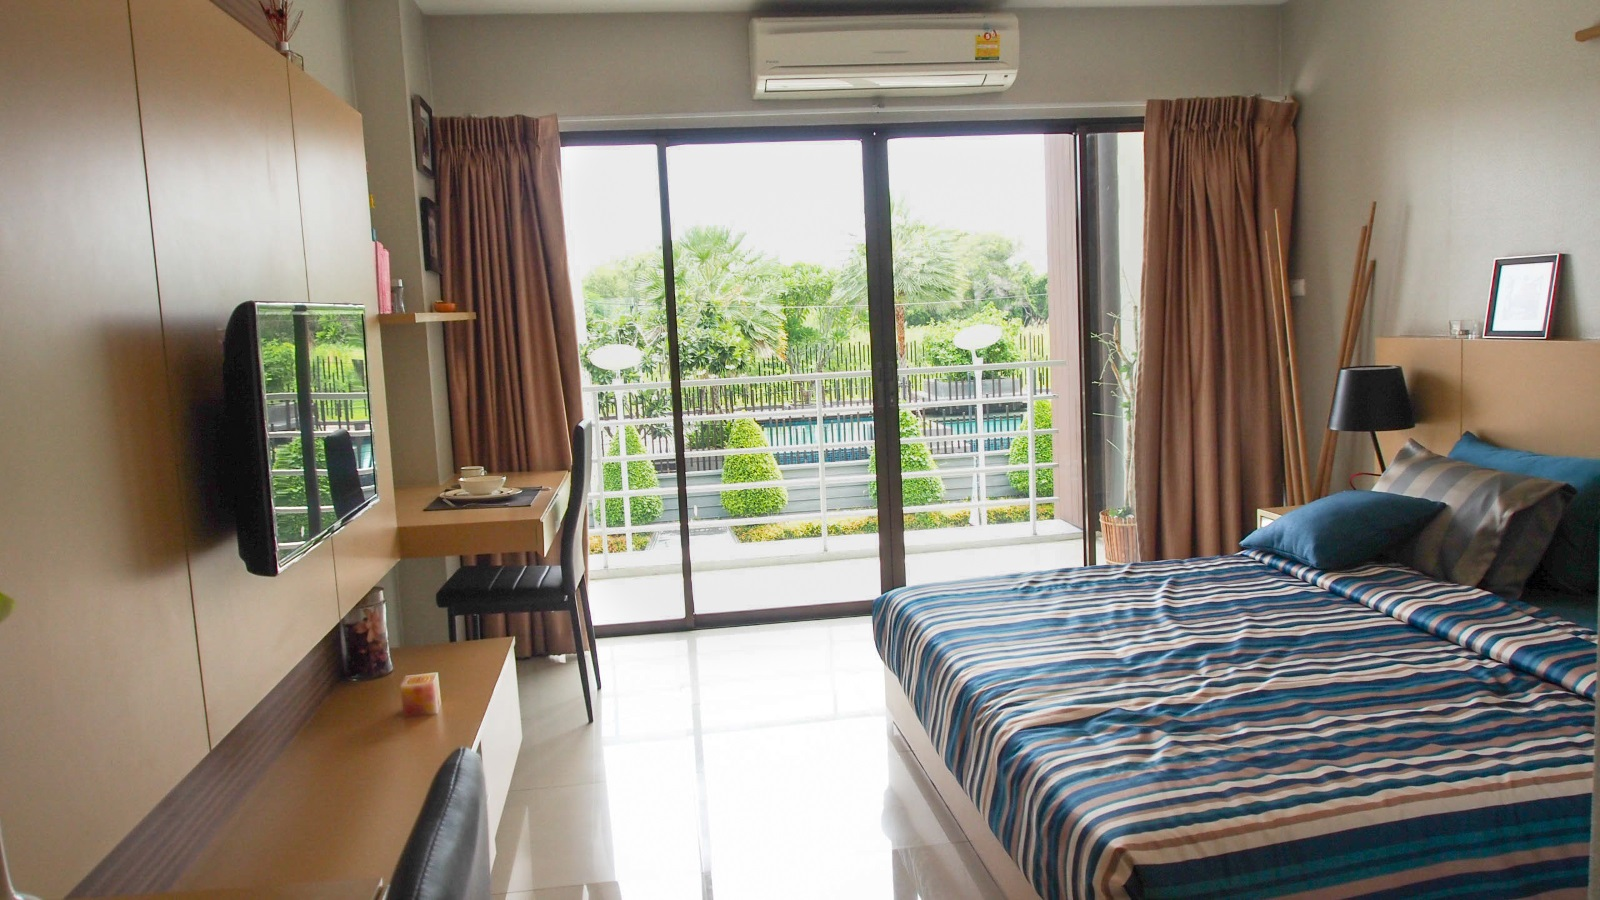 Apartment Room For Rent In Kuala Lumpur hostel, apartments, condominium & rooms for rent | hostelhunting